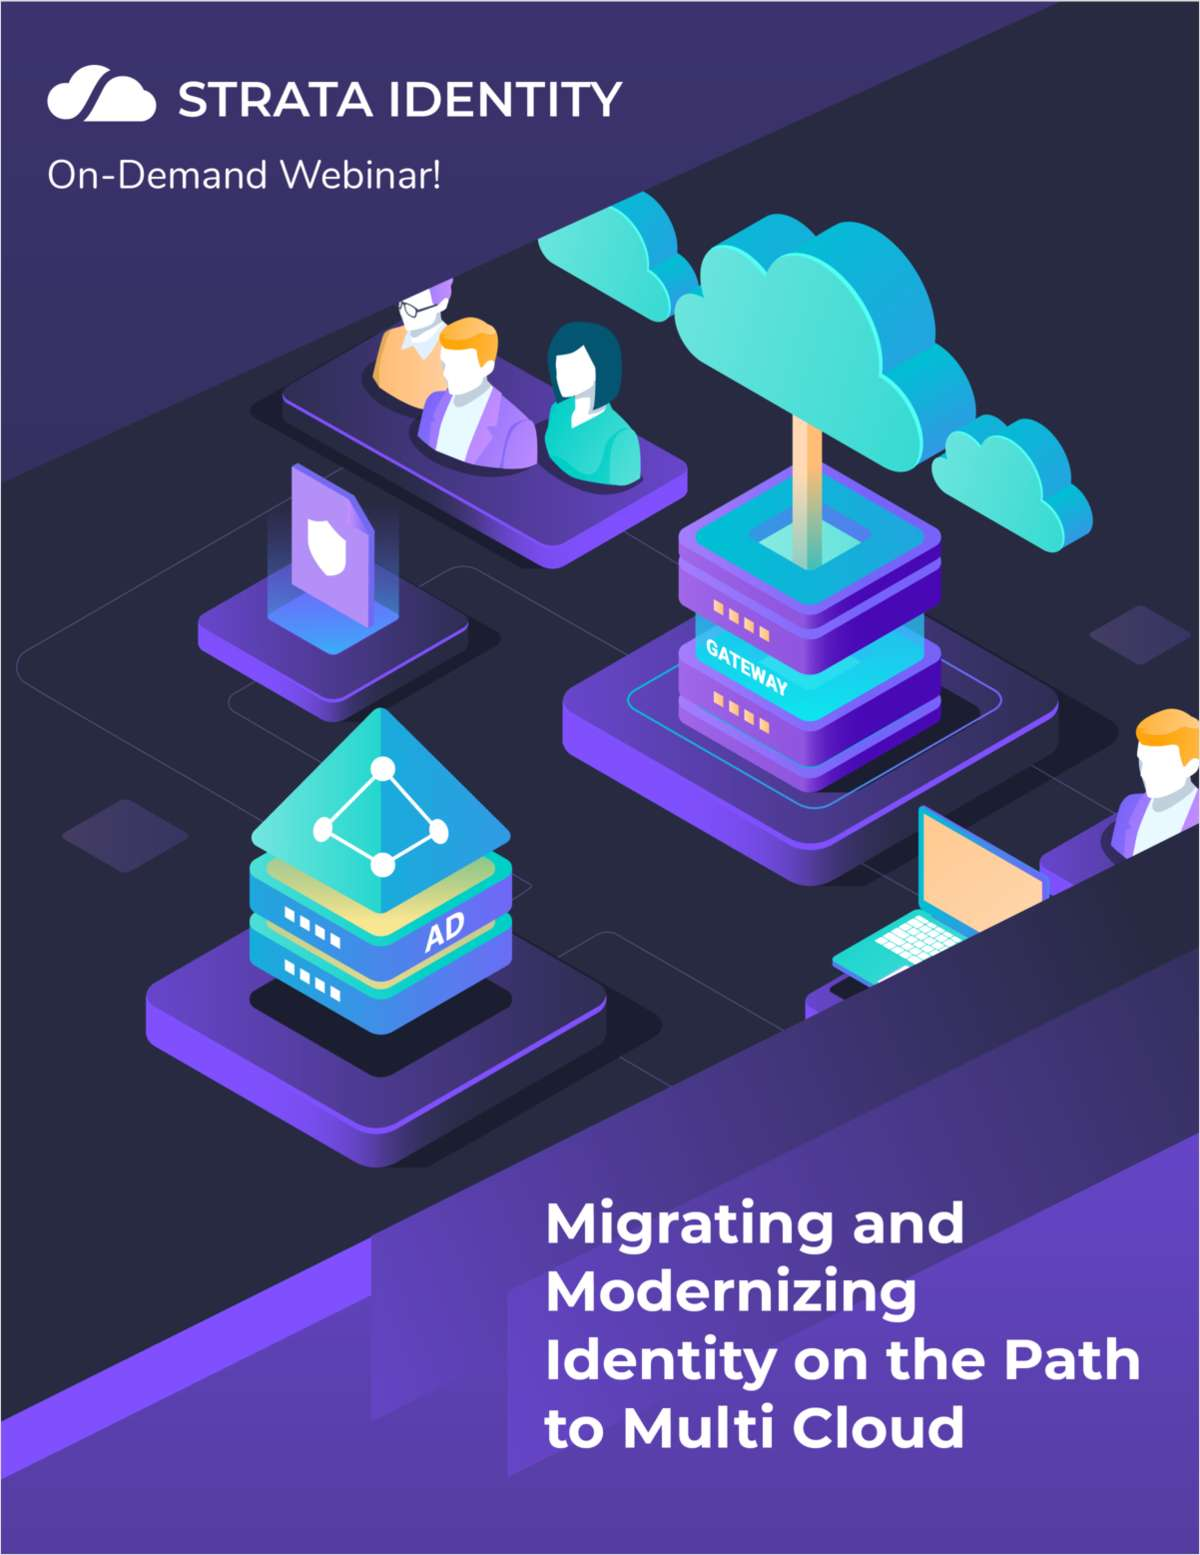 Migrating and Modernizing Identity on the Path to Multi Cloud